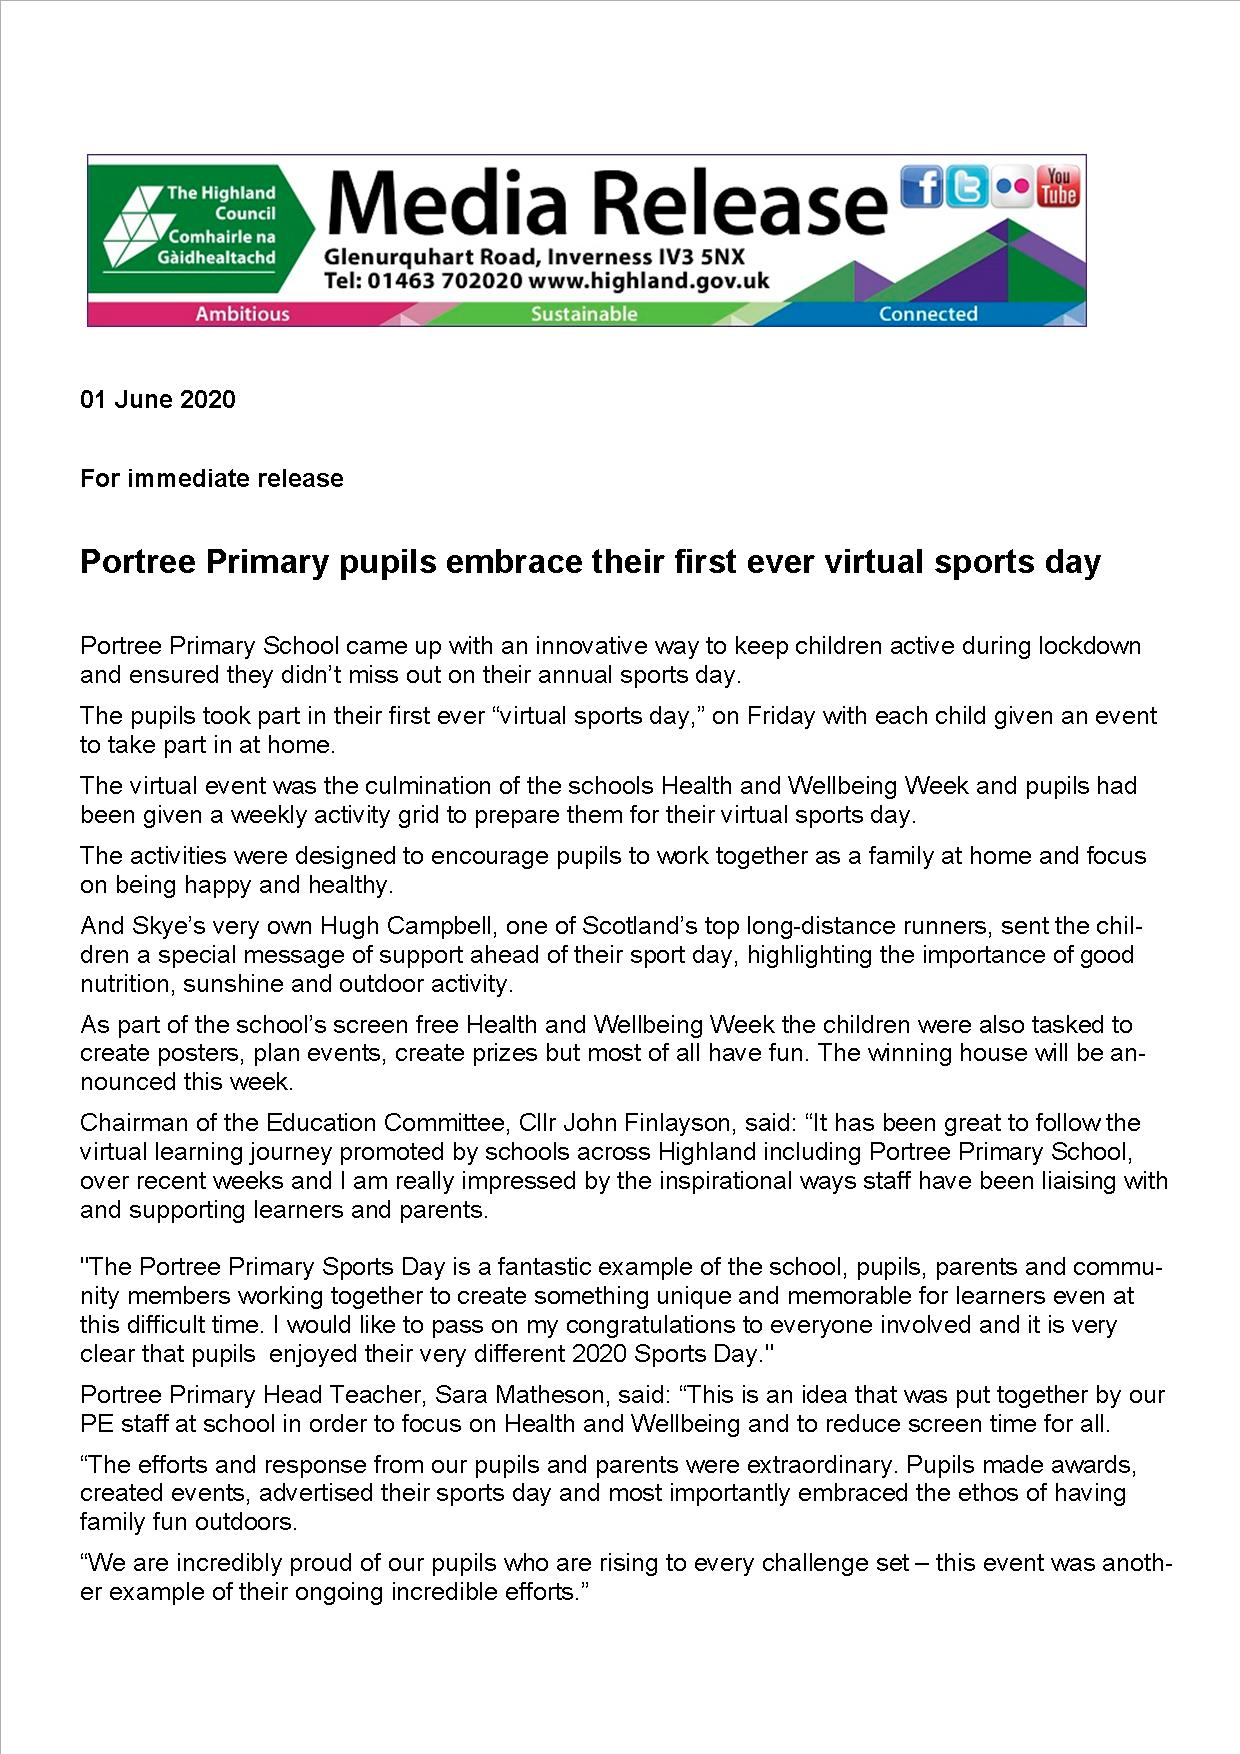 Media Release Sports Day